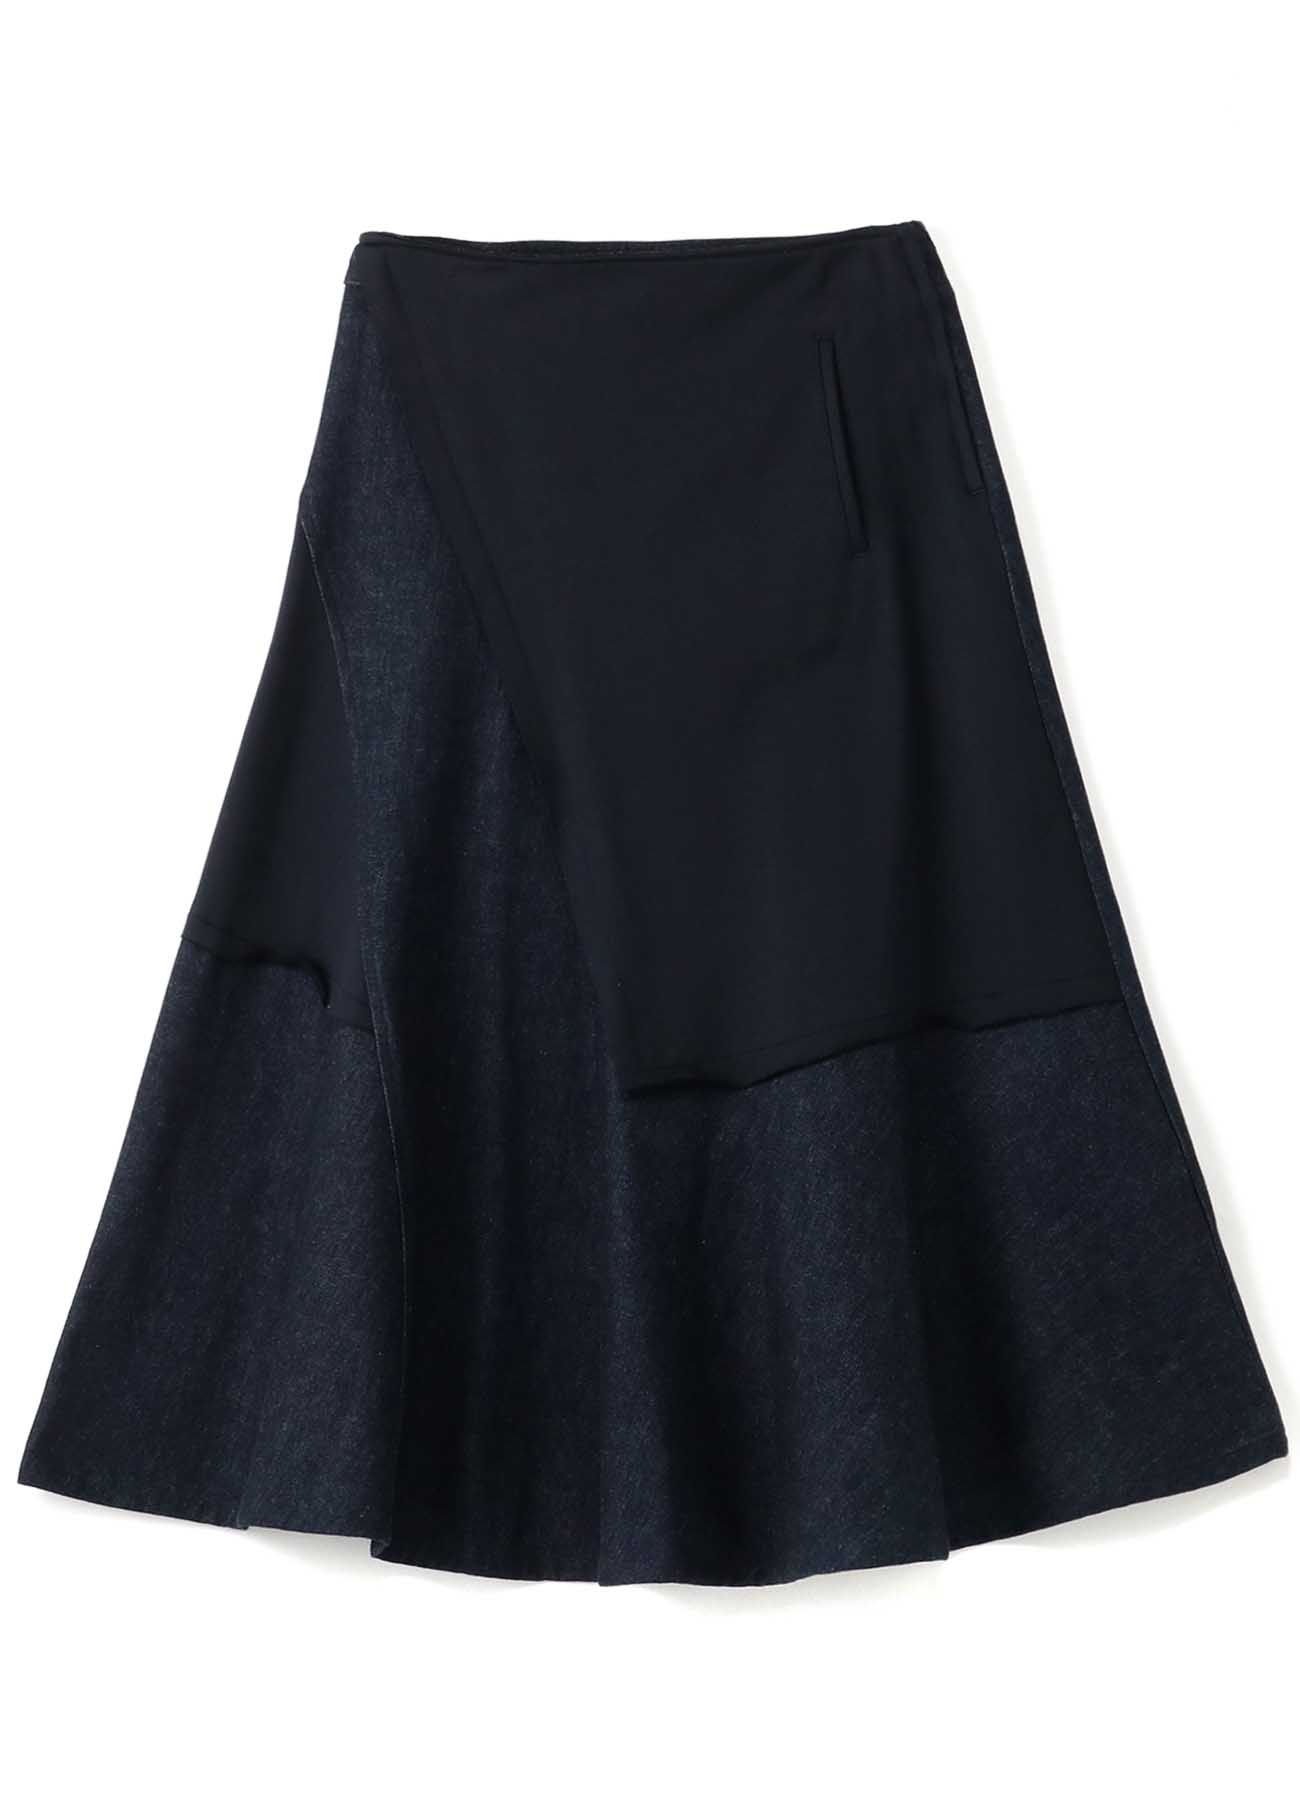 10ozDENIM + COTTON FLEECE LEFT SEAM LONG SKIRT